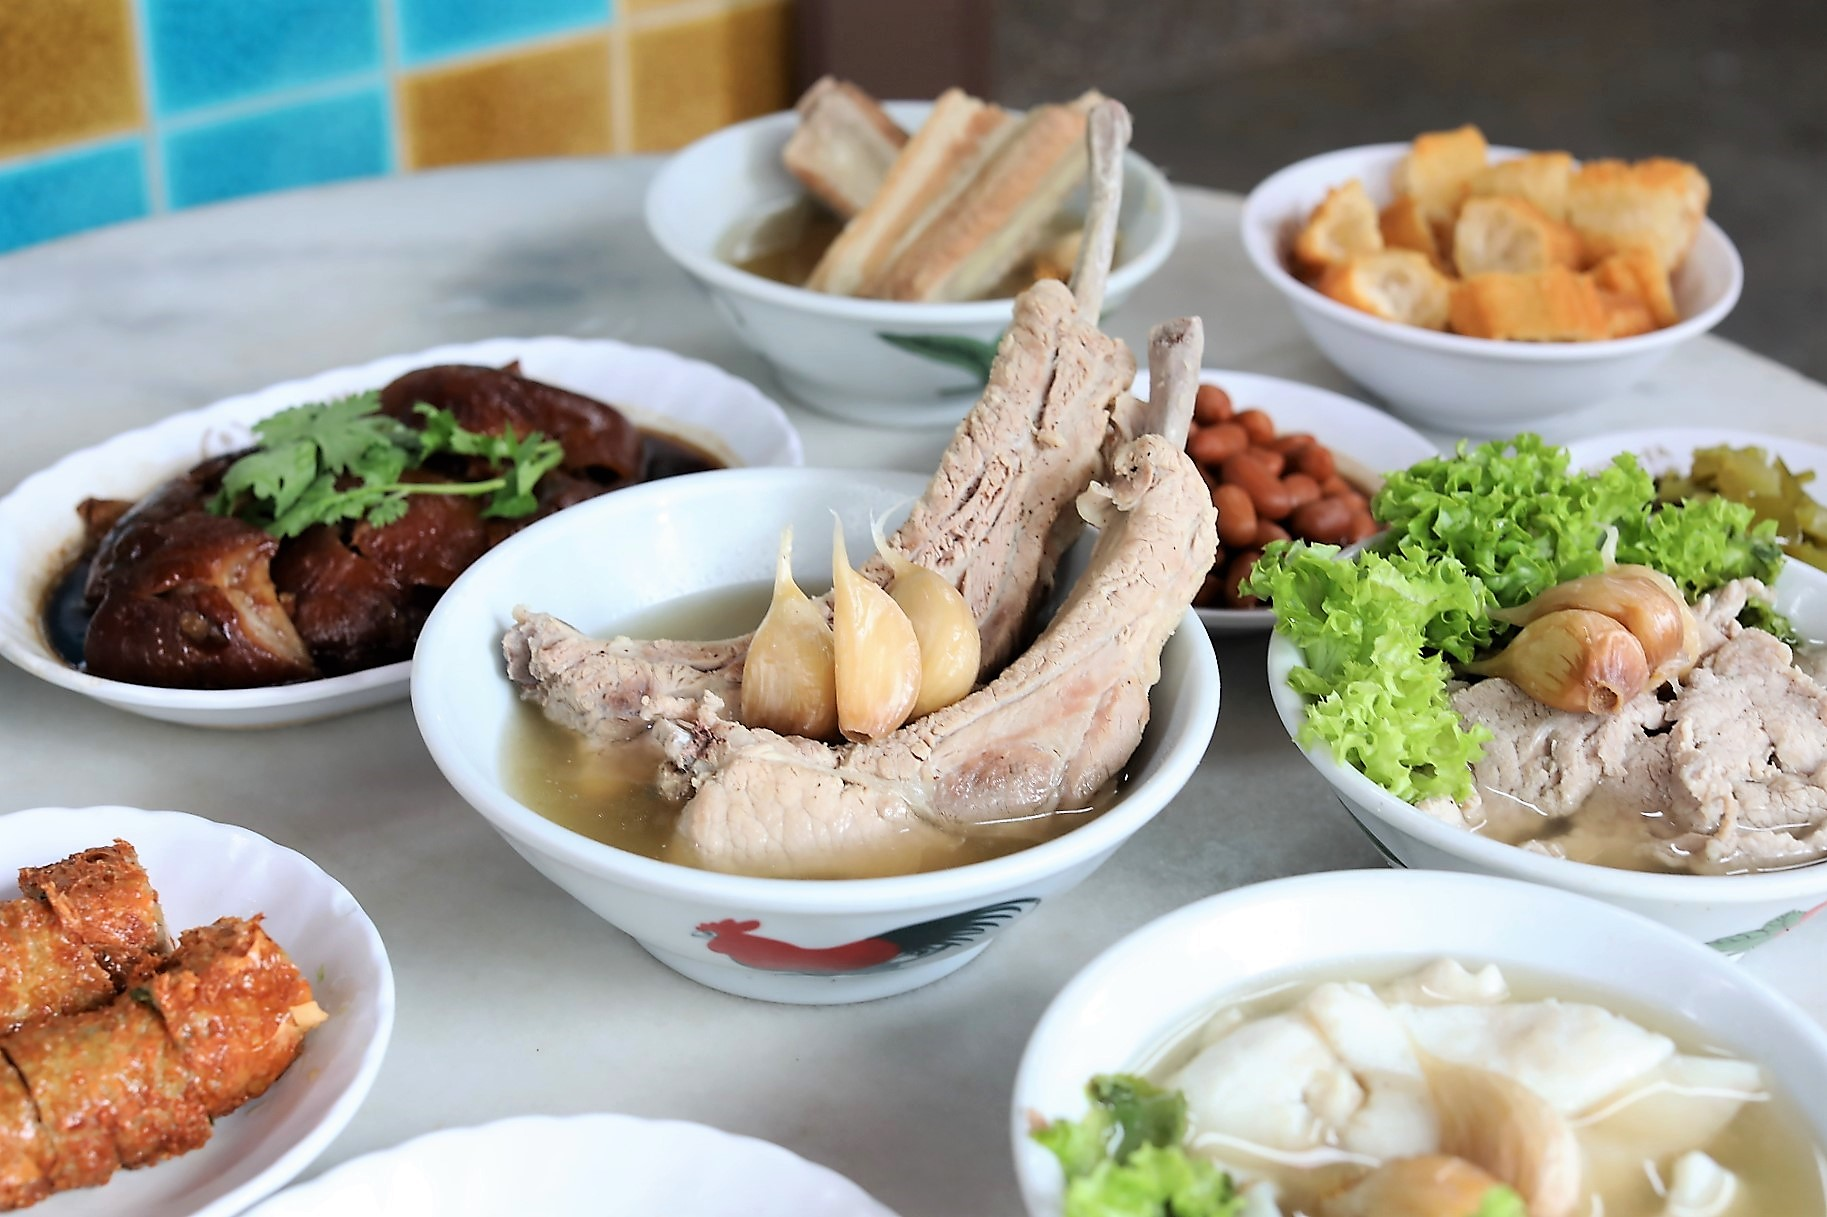 Song Fa Bak Kut Teh Peppery Pork Ribs Soup And Sliced Fish Soup With Michelin Bib Gourmand Danielfooddiary Com